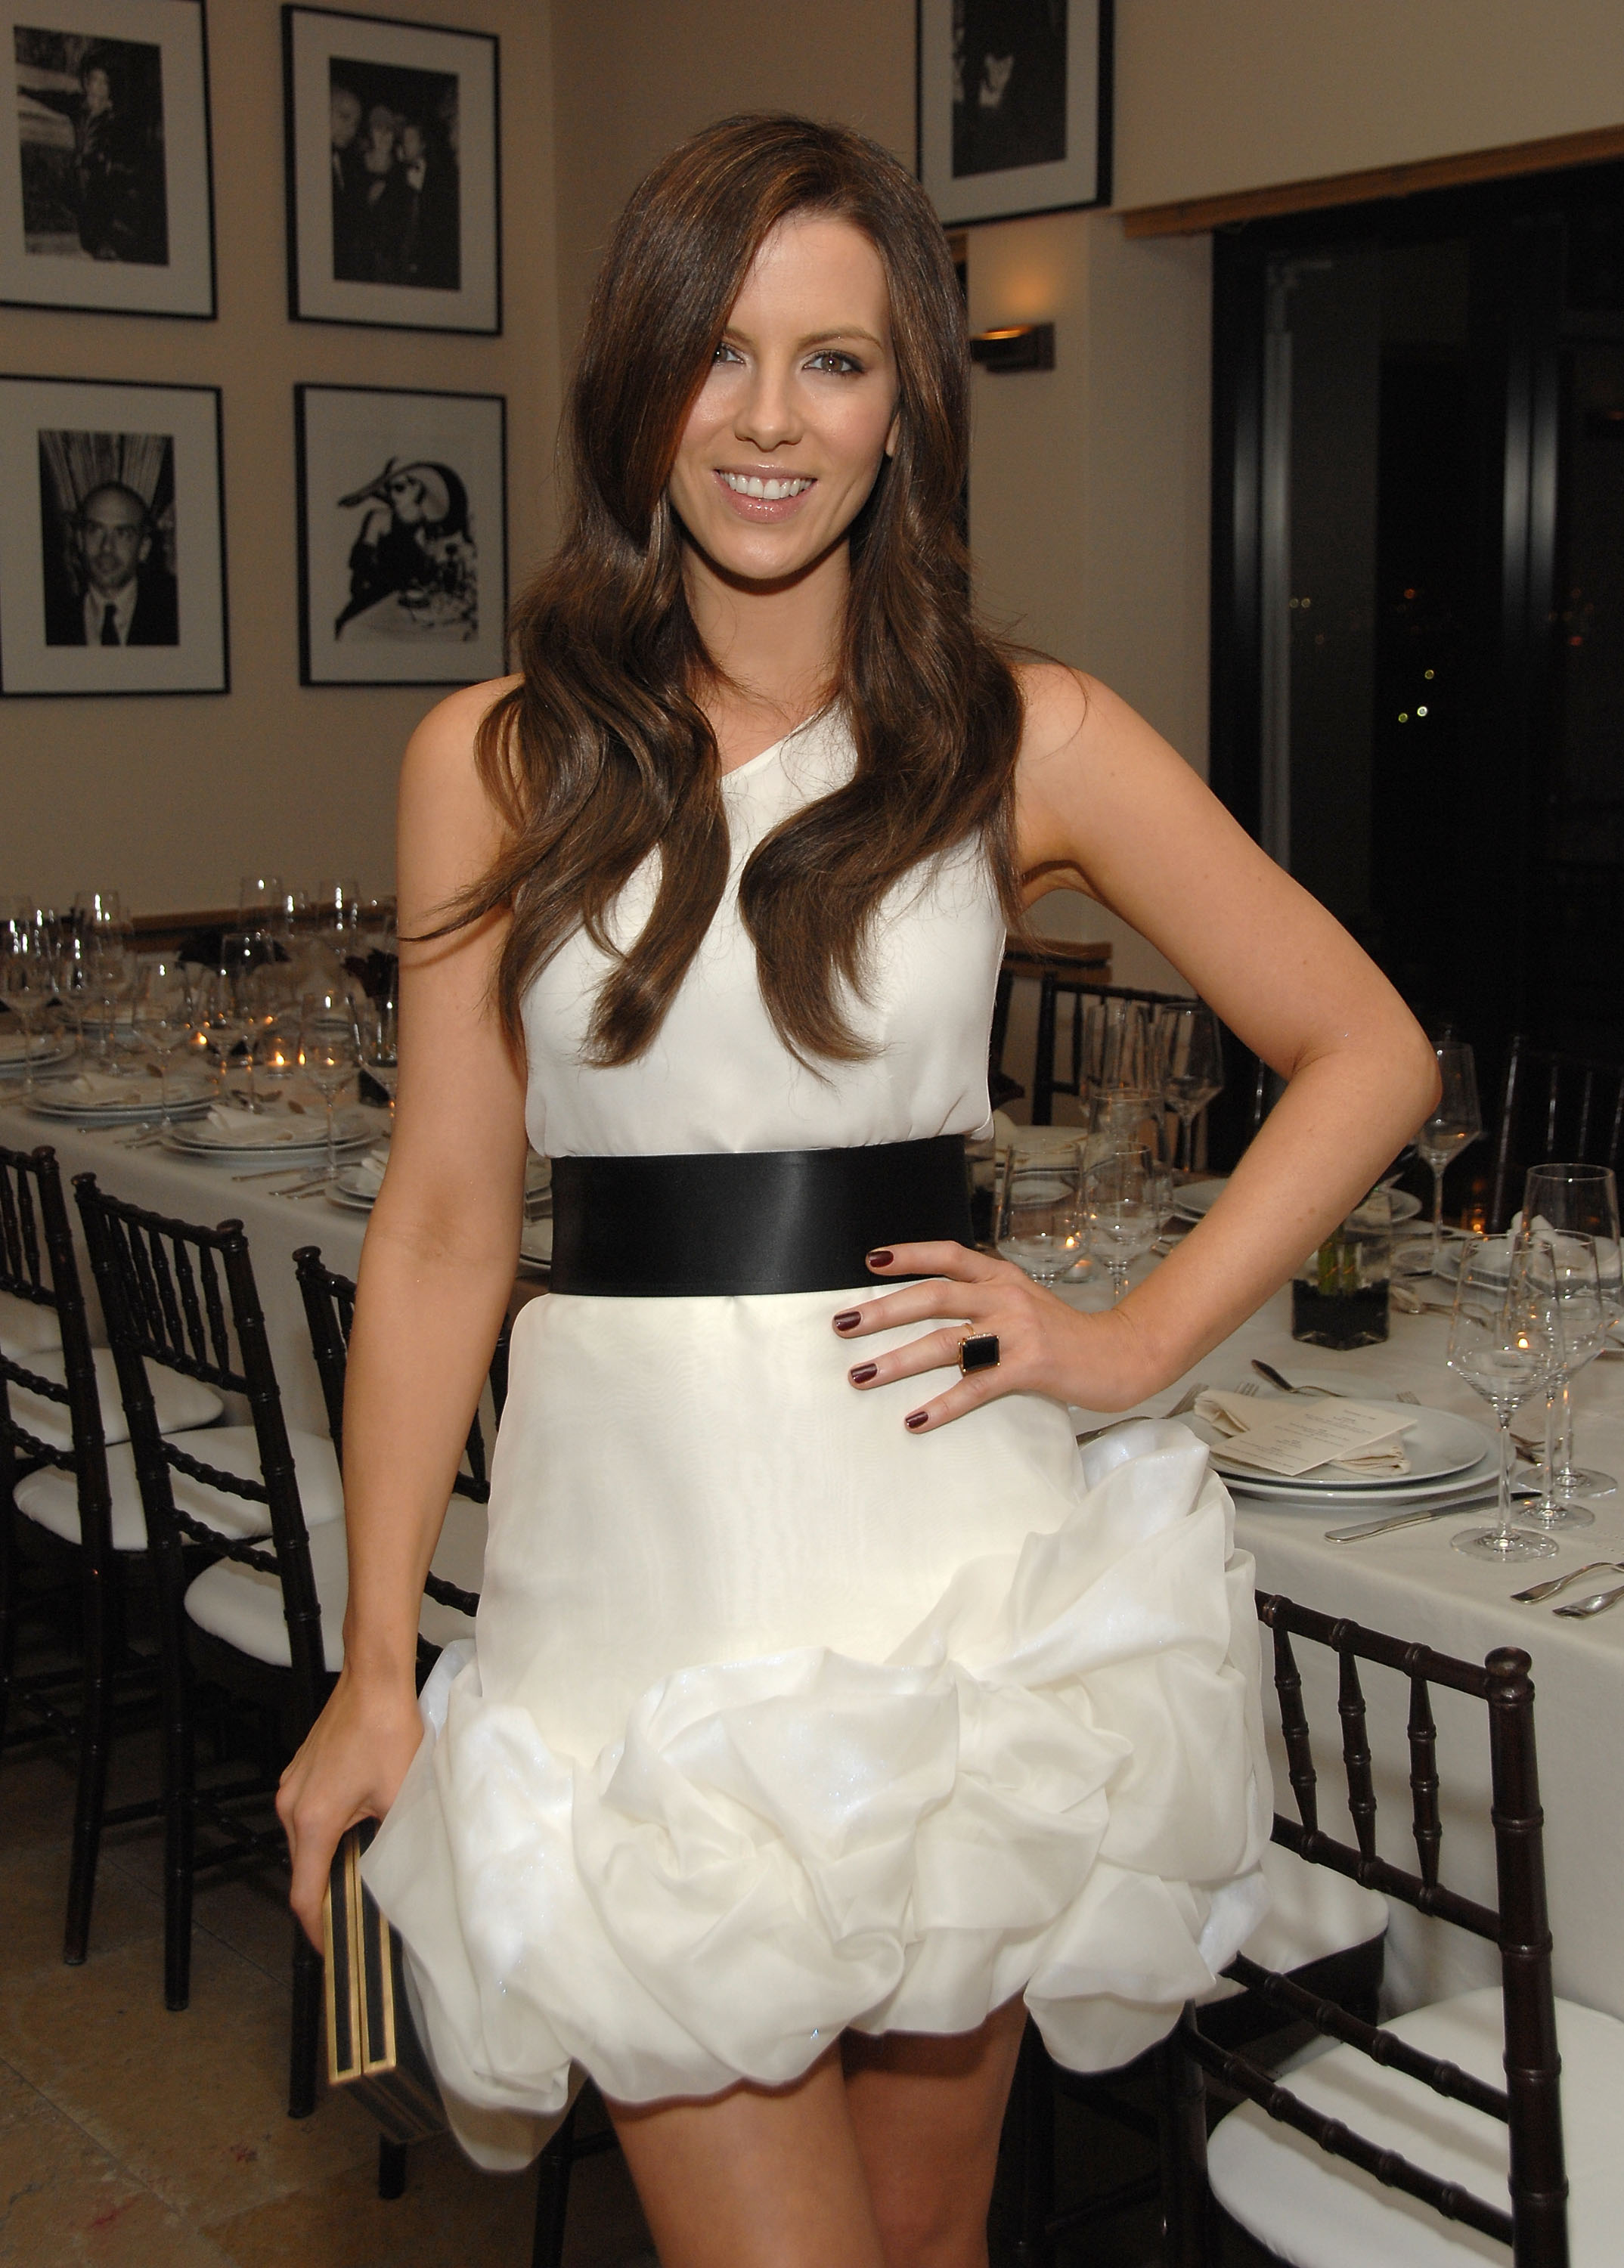 91854_Celebutopia-Kate_Beckinsale-R1Y_Augousti_and_Barneys_dinner_for_Nothing_But_The_Truth-10_122_672lo.jpg